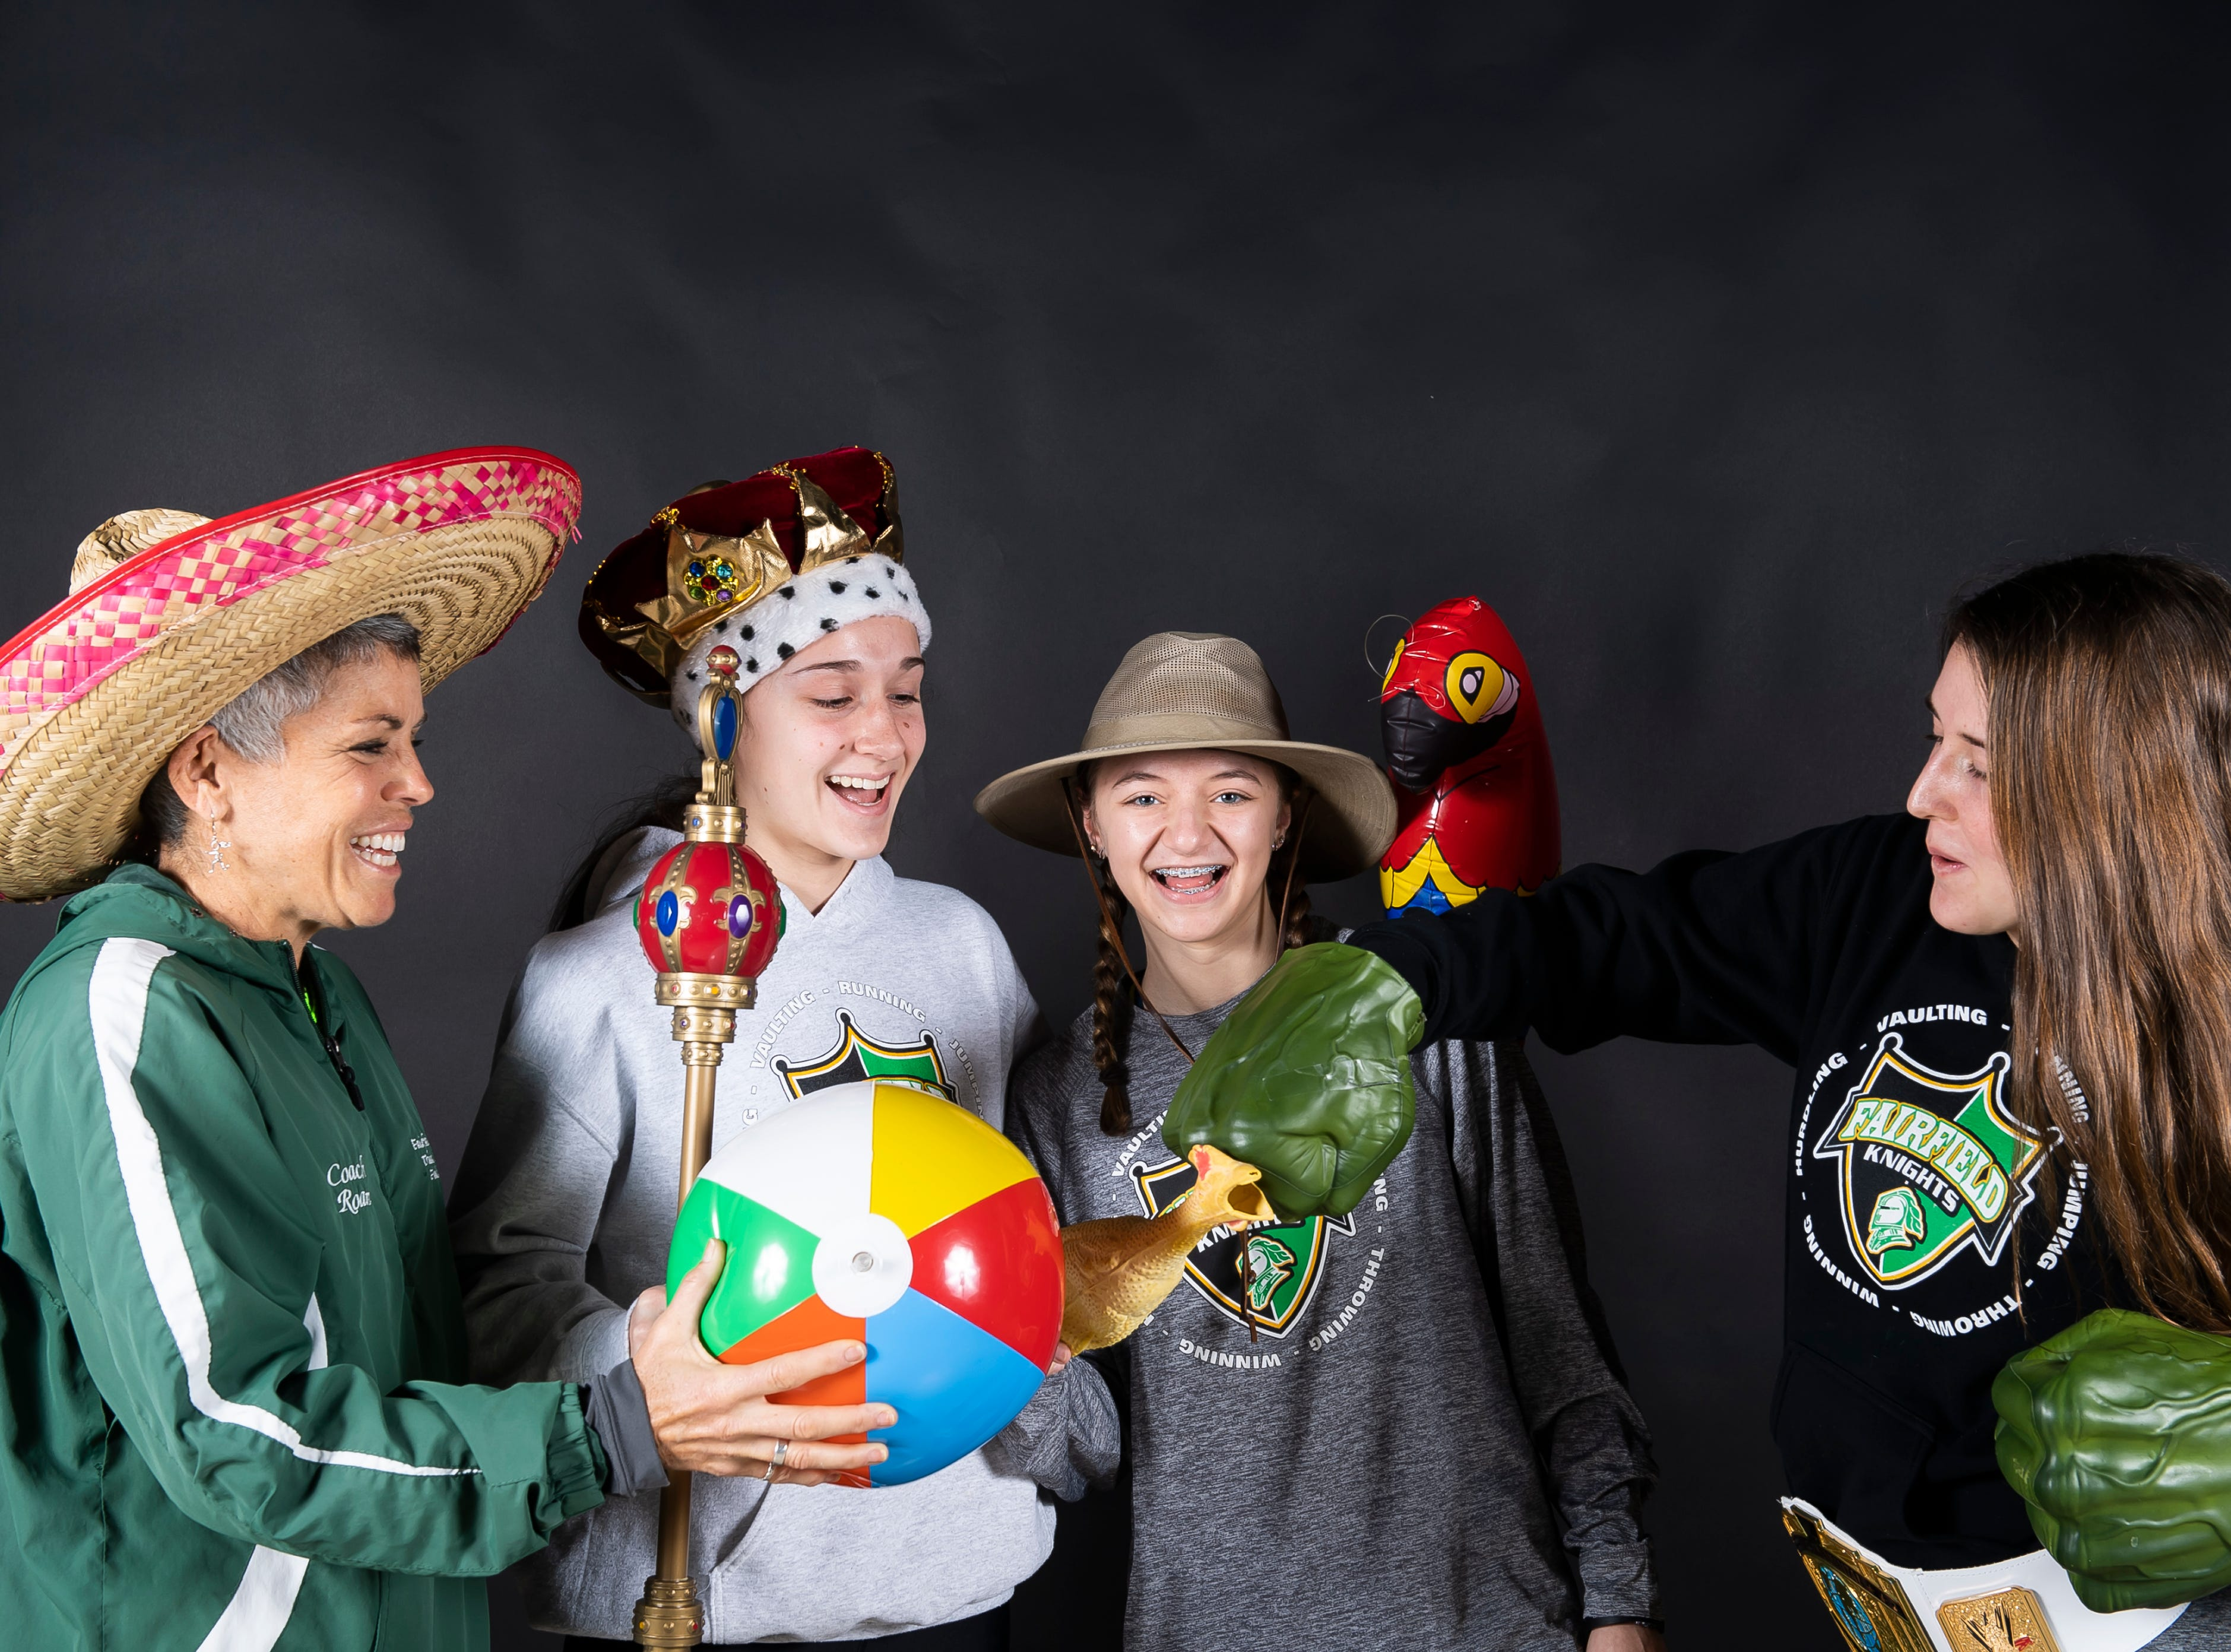 The Fairfield girls track and field team strike a pose in the GameTimePA photo booth during spring sports media day in York Sunday, March 10, 2019.